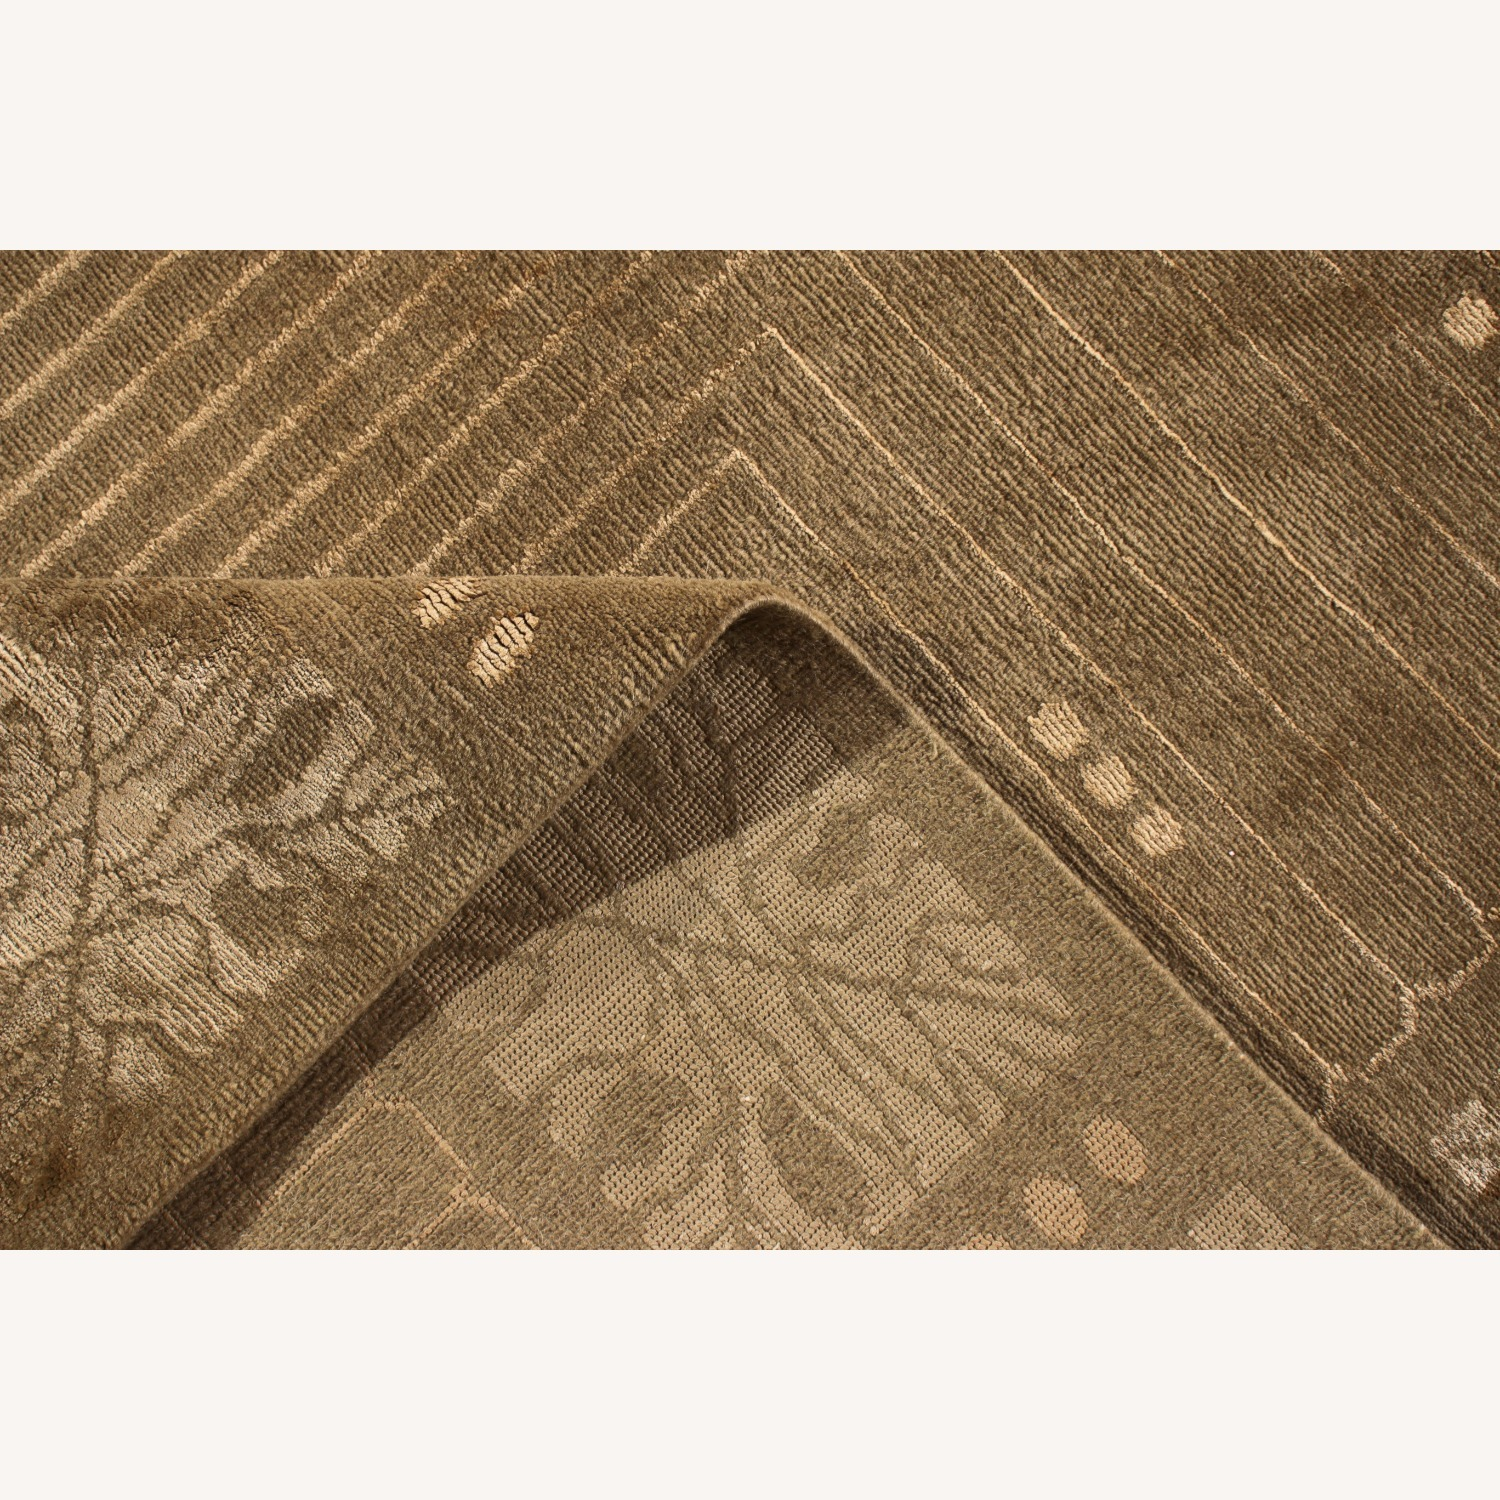 Hand-Knotted Art Deco Style Rug Beige Green - image-3